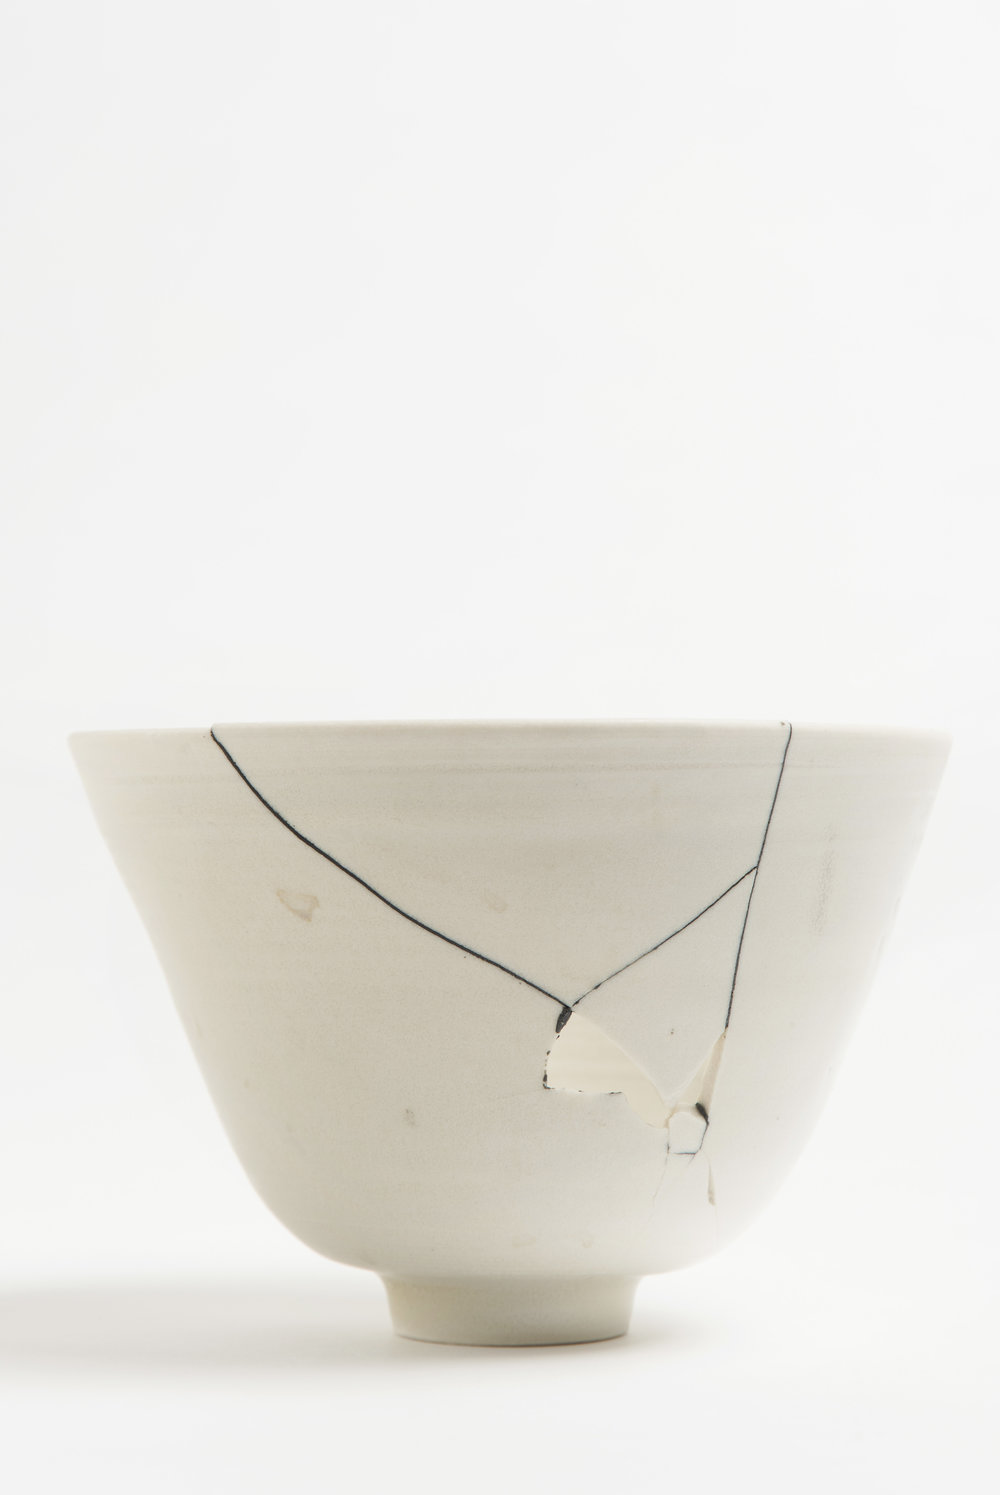 white-fracture-series-bowl-romy-northover-ceramics-the-garnered-40.jpg